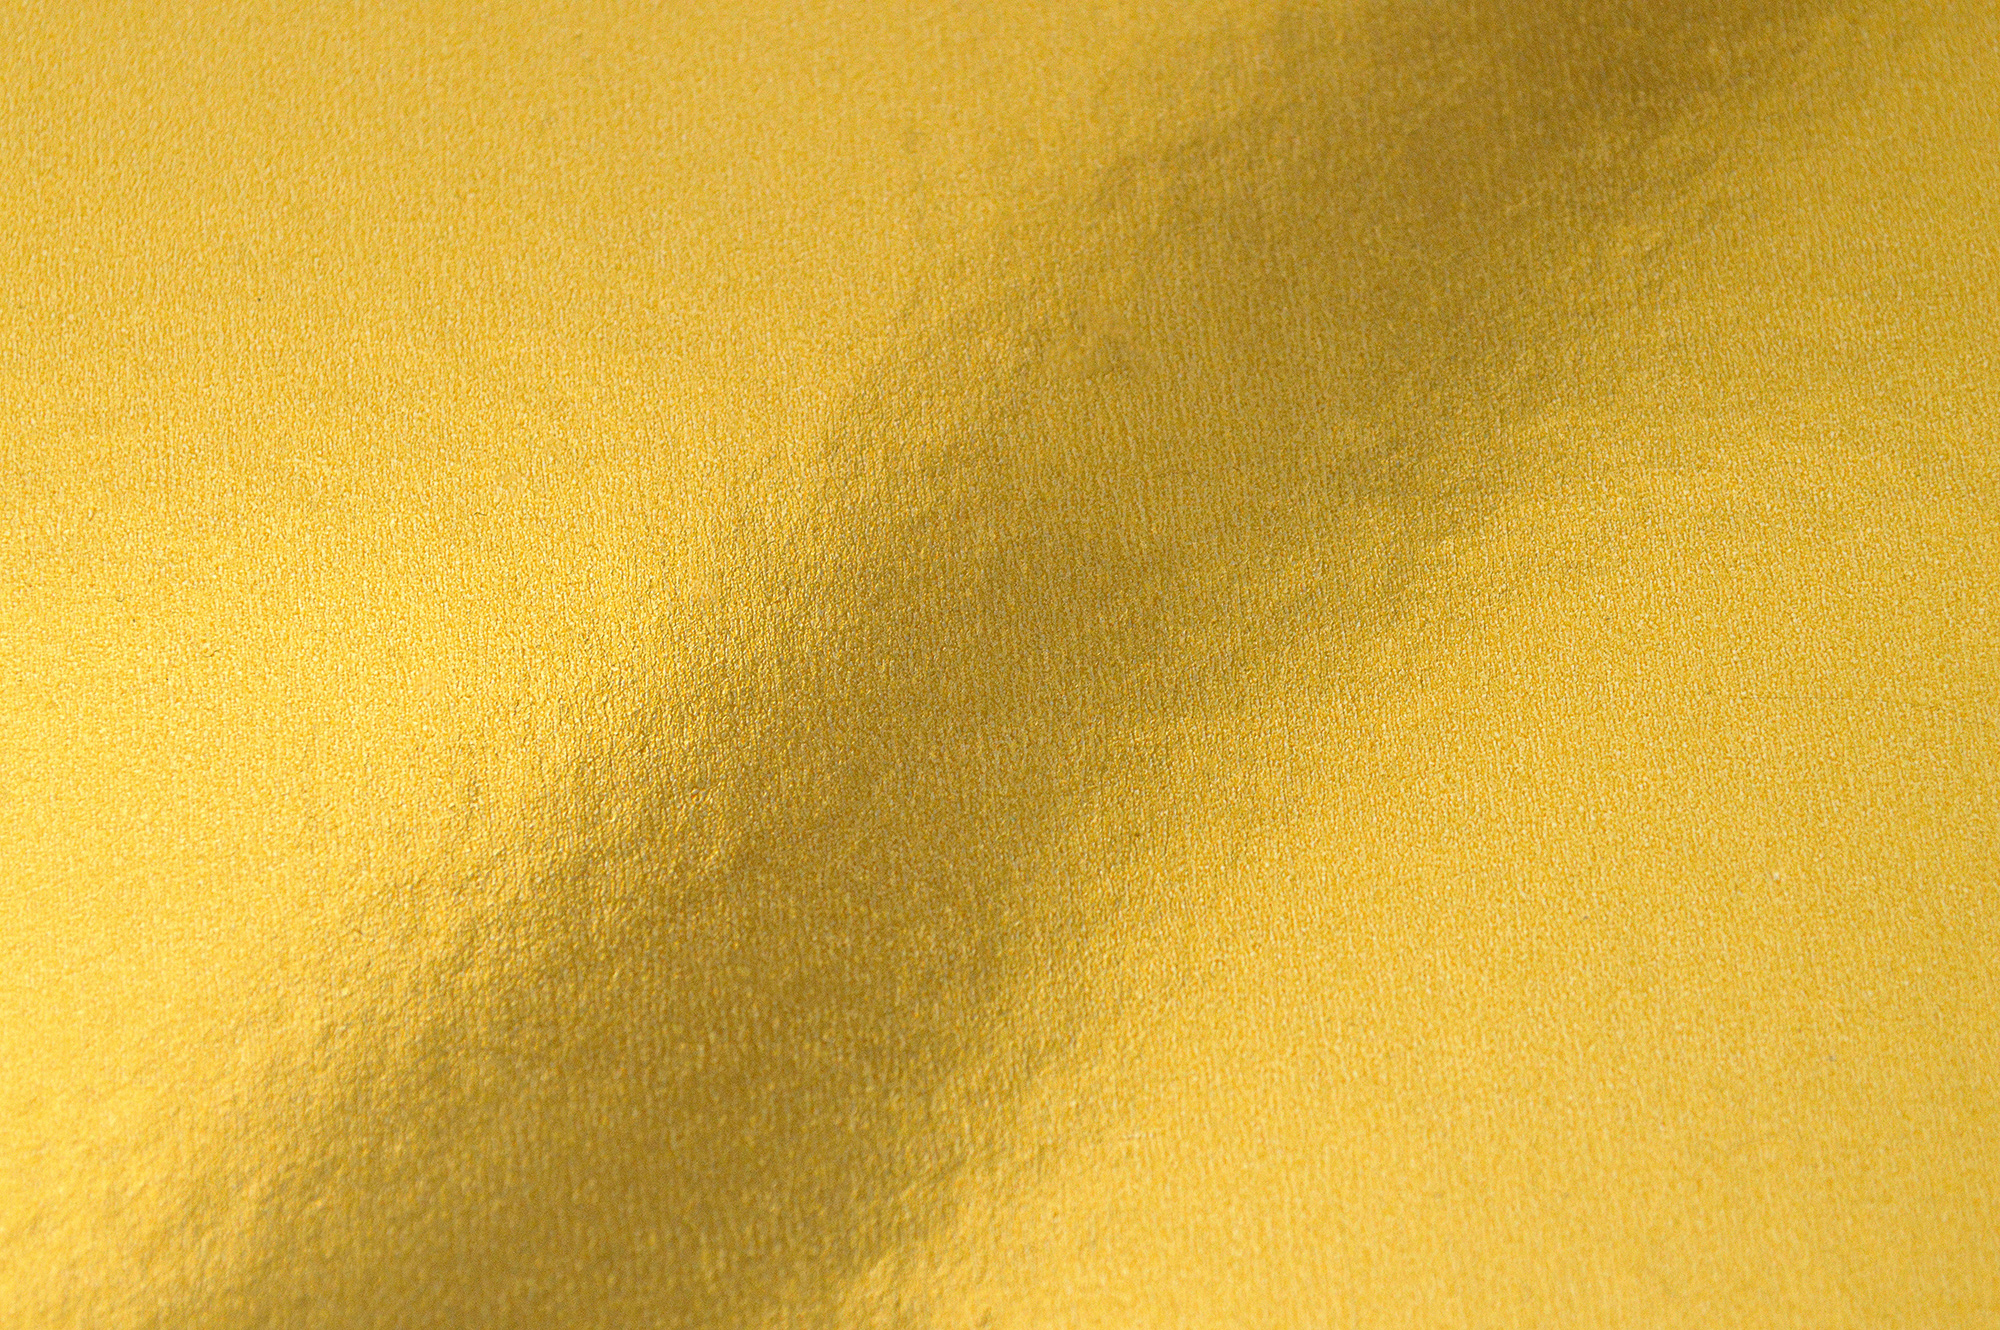 On the Color of Gold